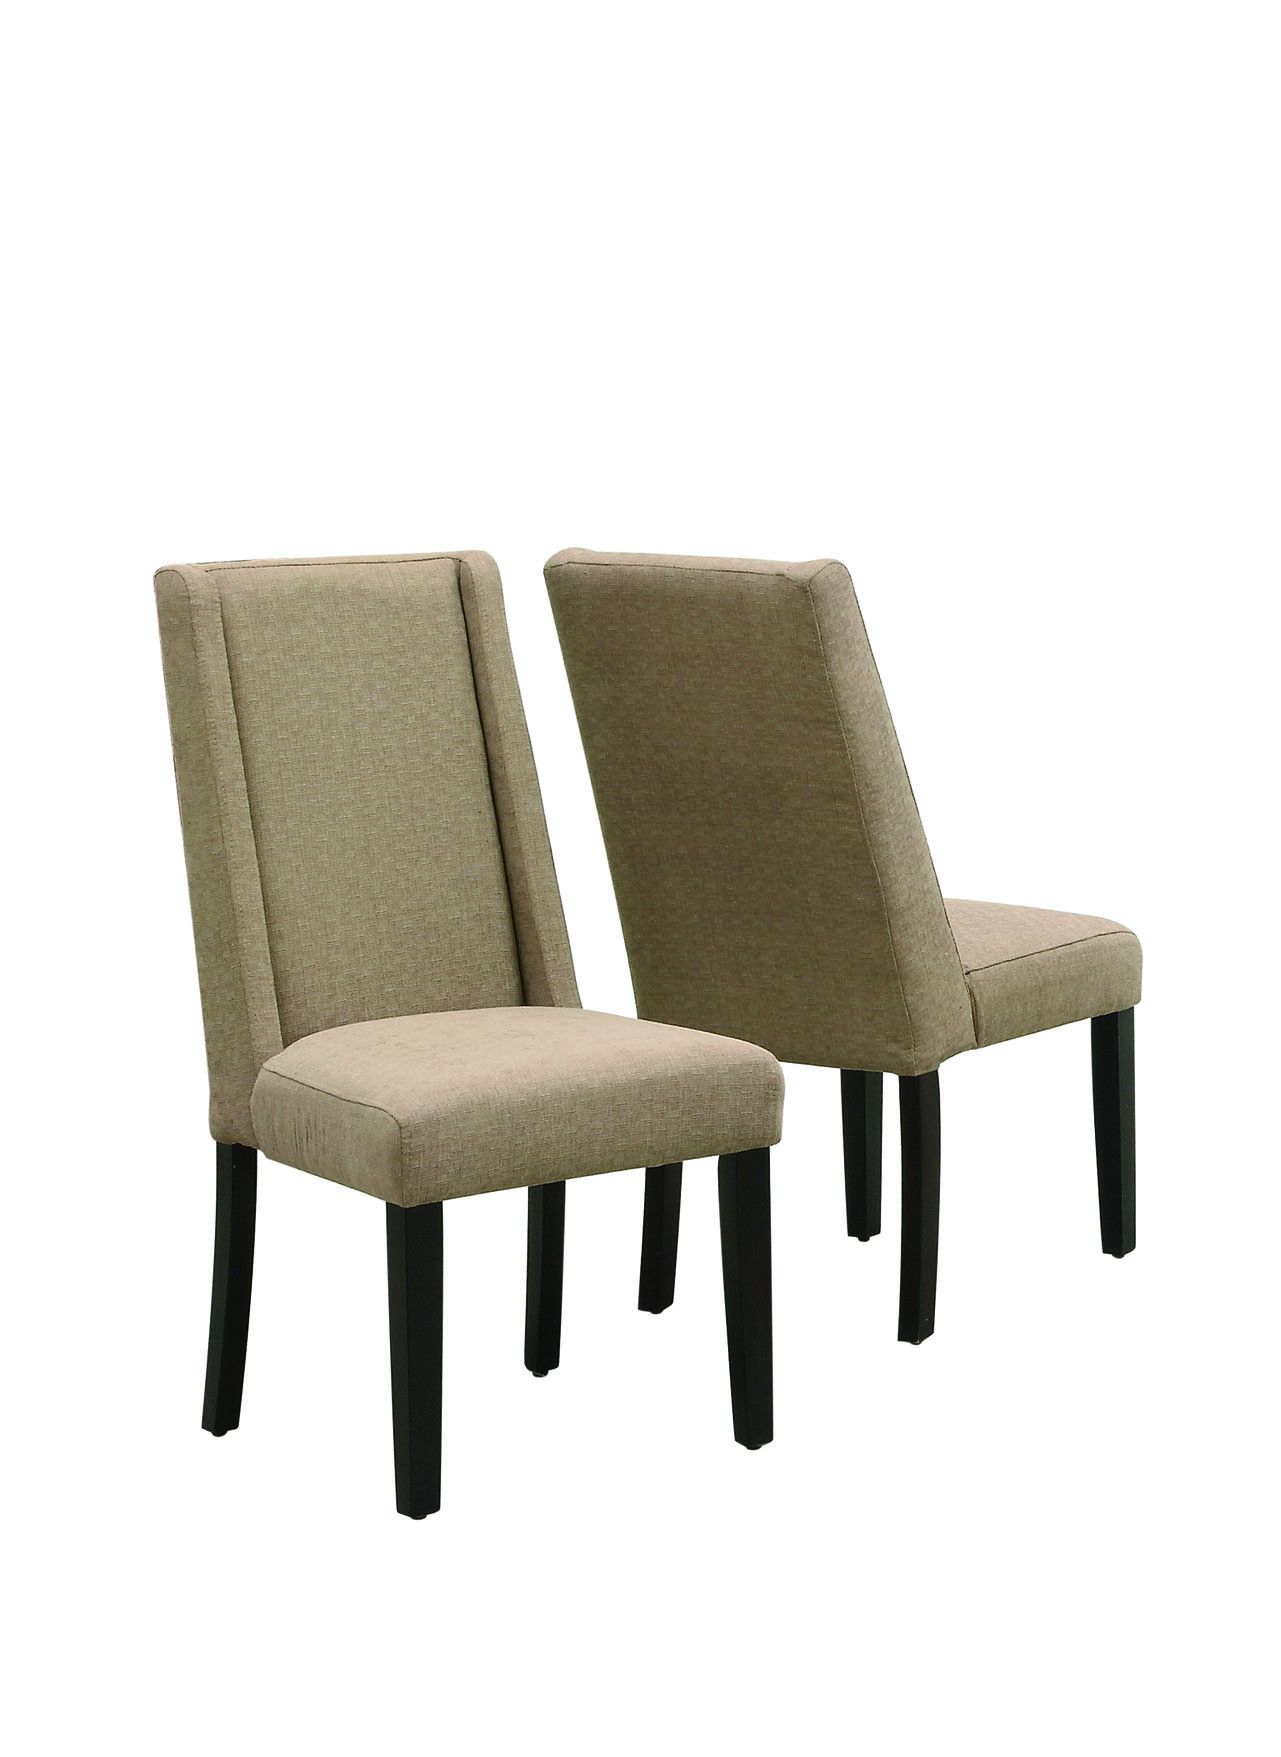 """Monarch Taupe Linen 40""""H Dining Chair / 2Pcs Per Carton - on sale now for $363 at Michael Anthony Furniture!"""